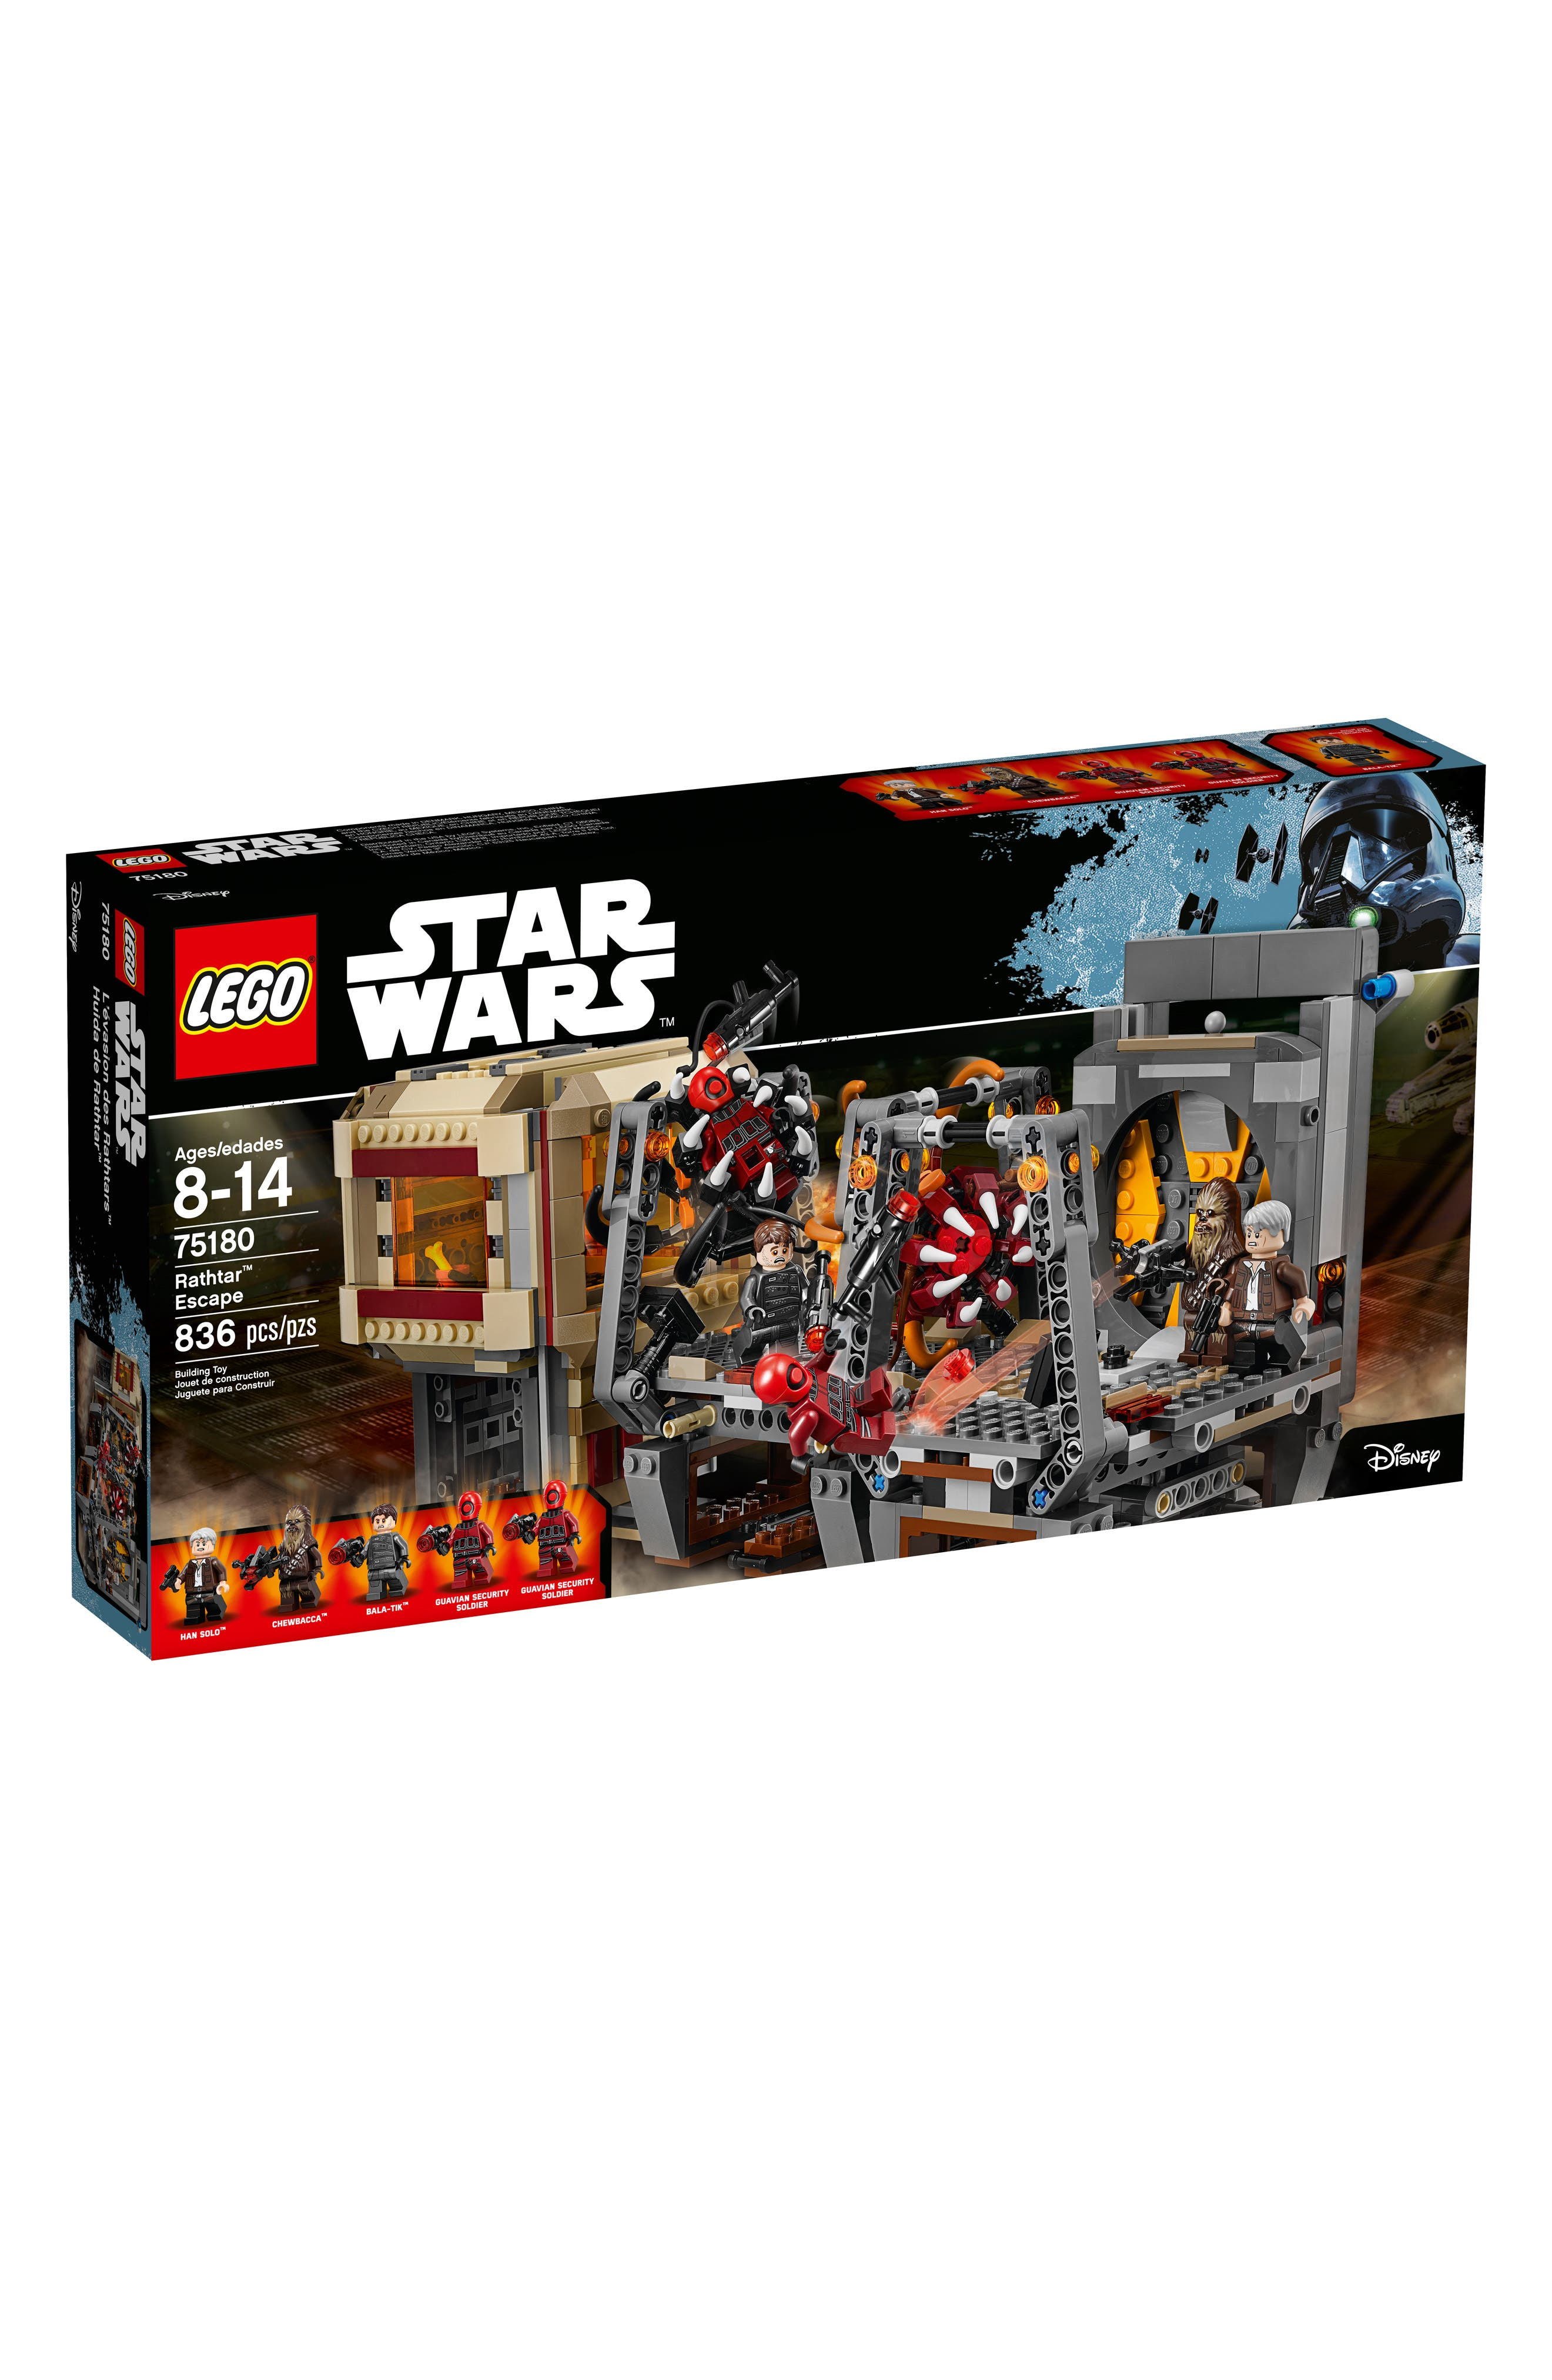 LEGO® Star Wars™: The Force Awakens Rathtar™ Escape Play Set - 75180